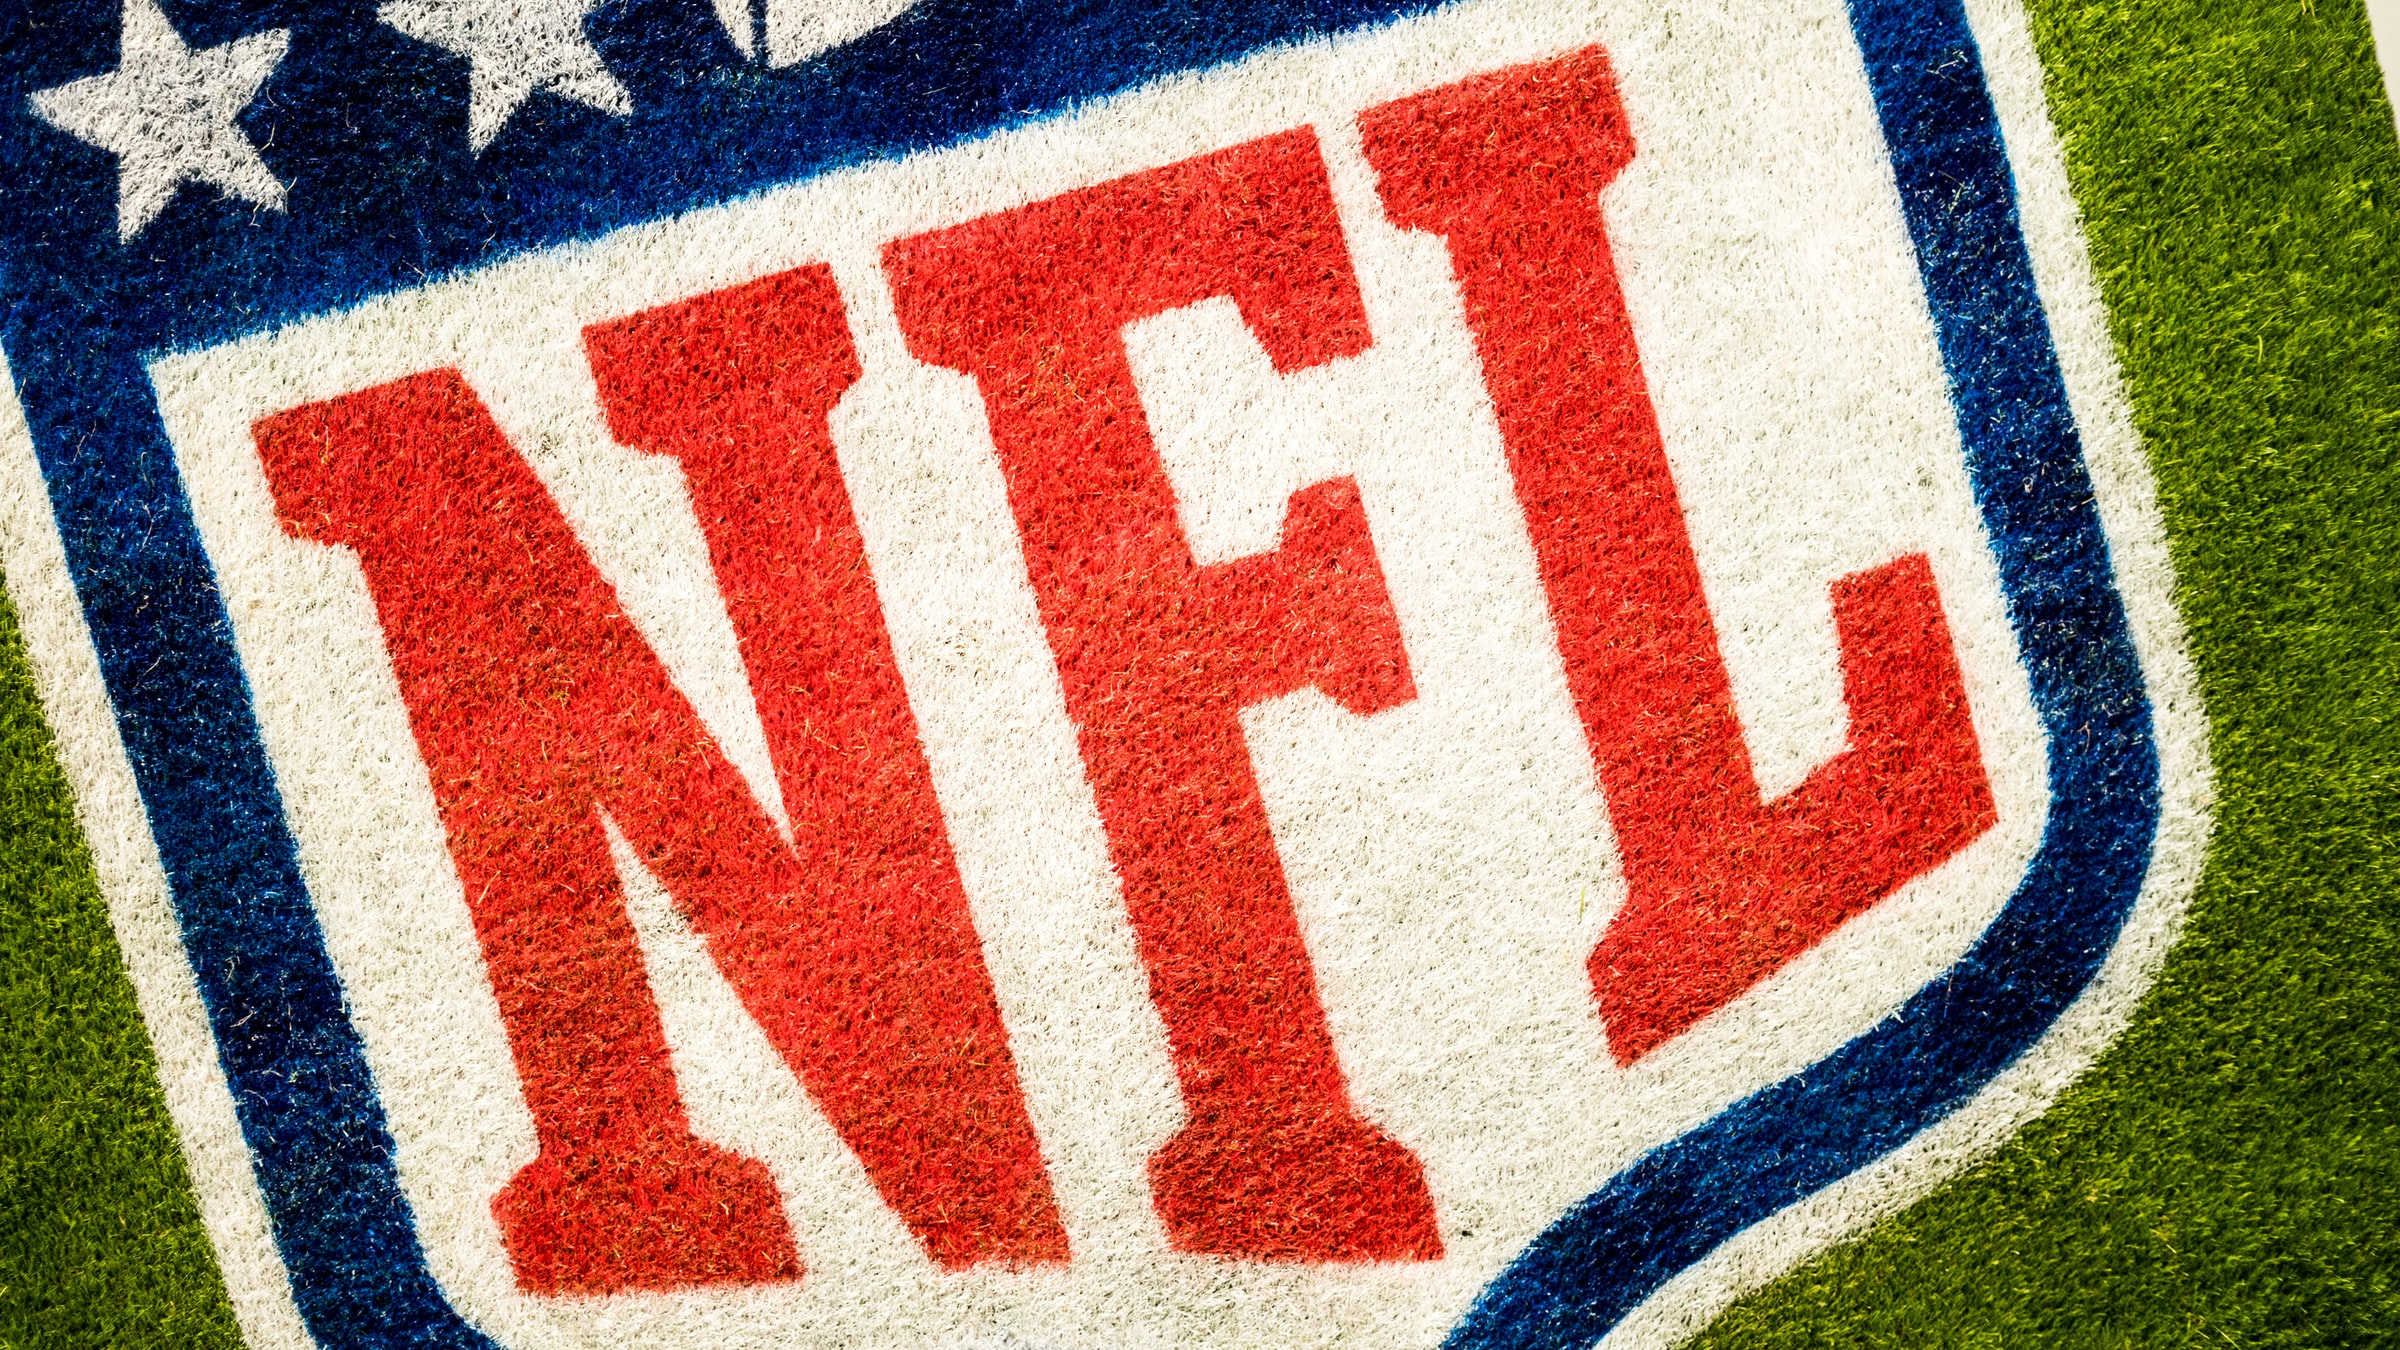 Verizon partners with the NFL to offer live viewing parties and AR replays